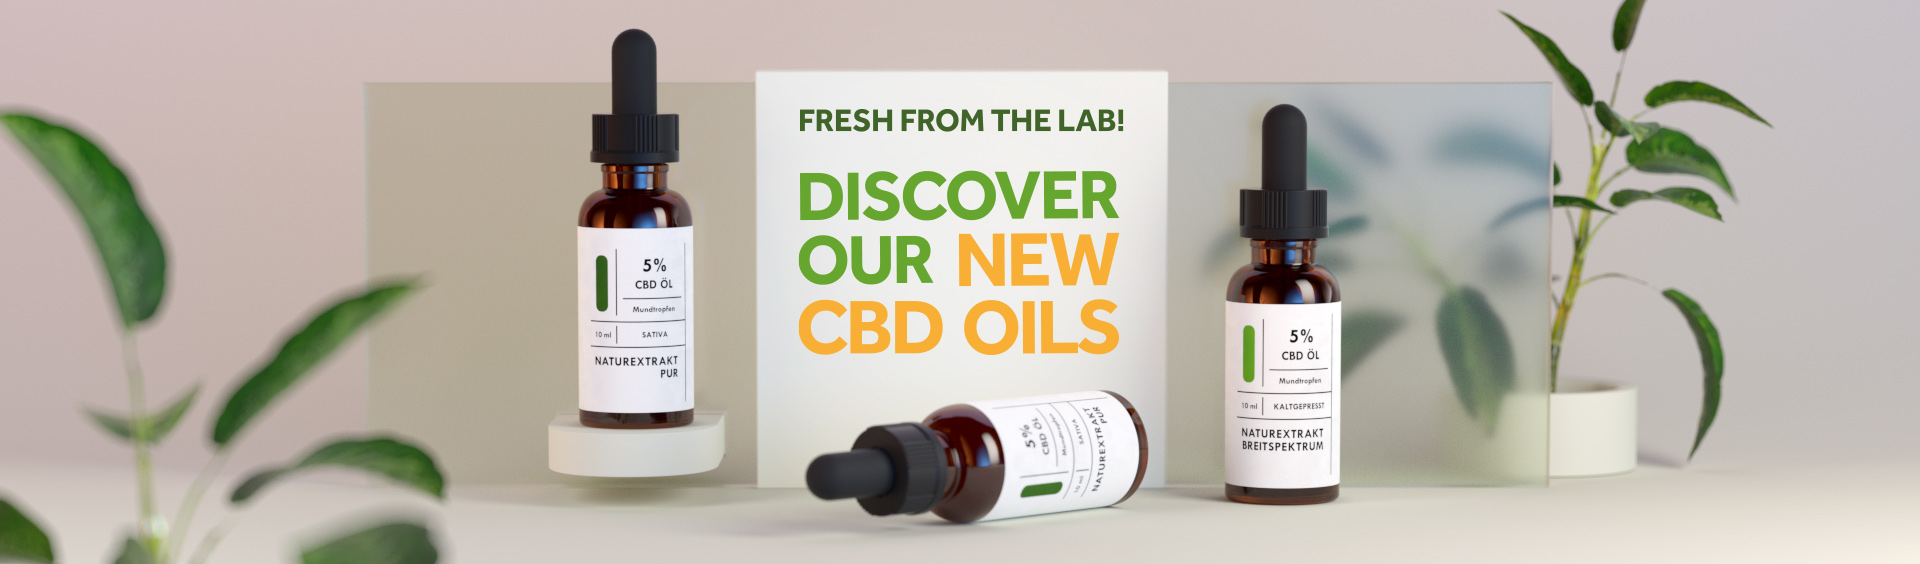 New CBD Oils